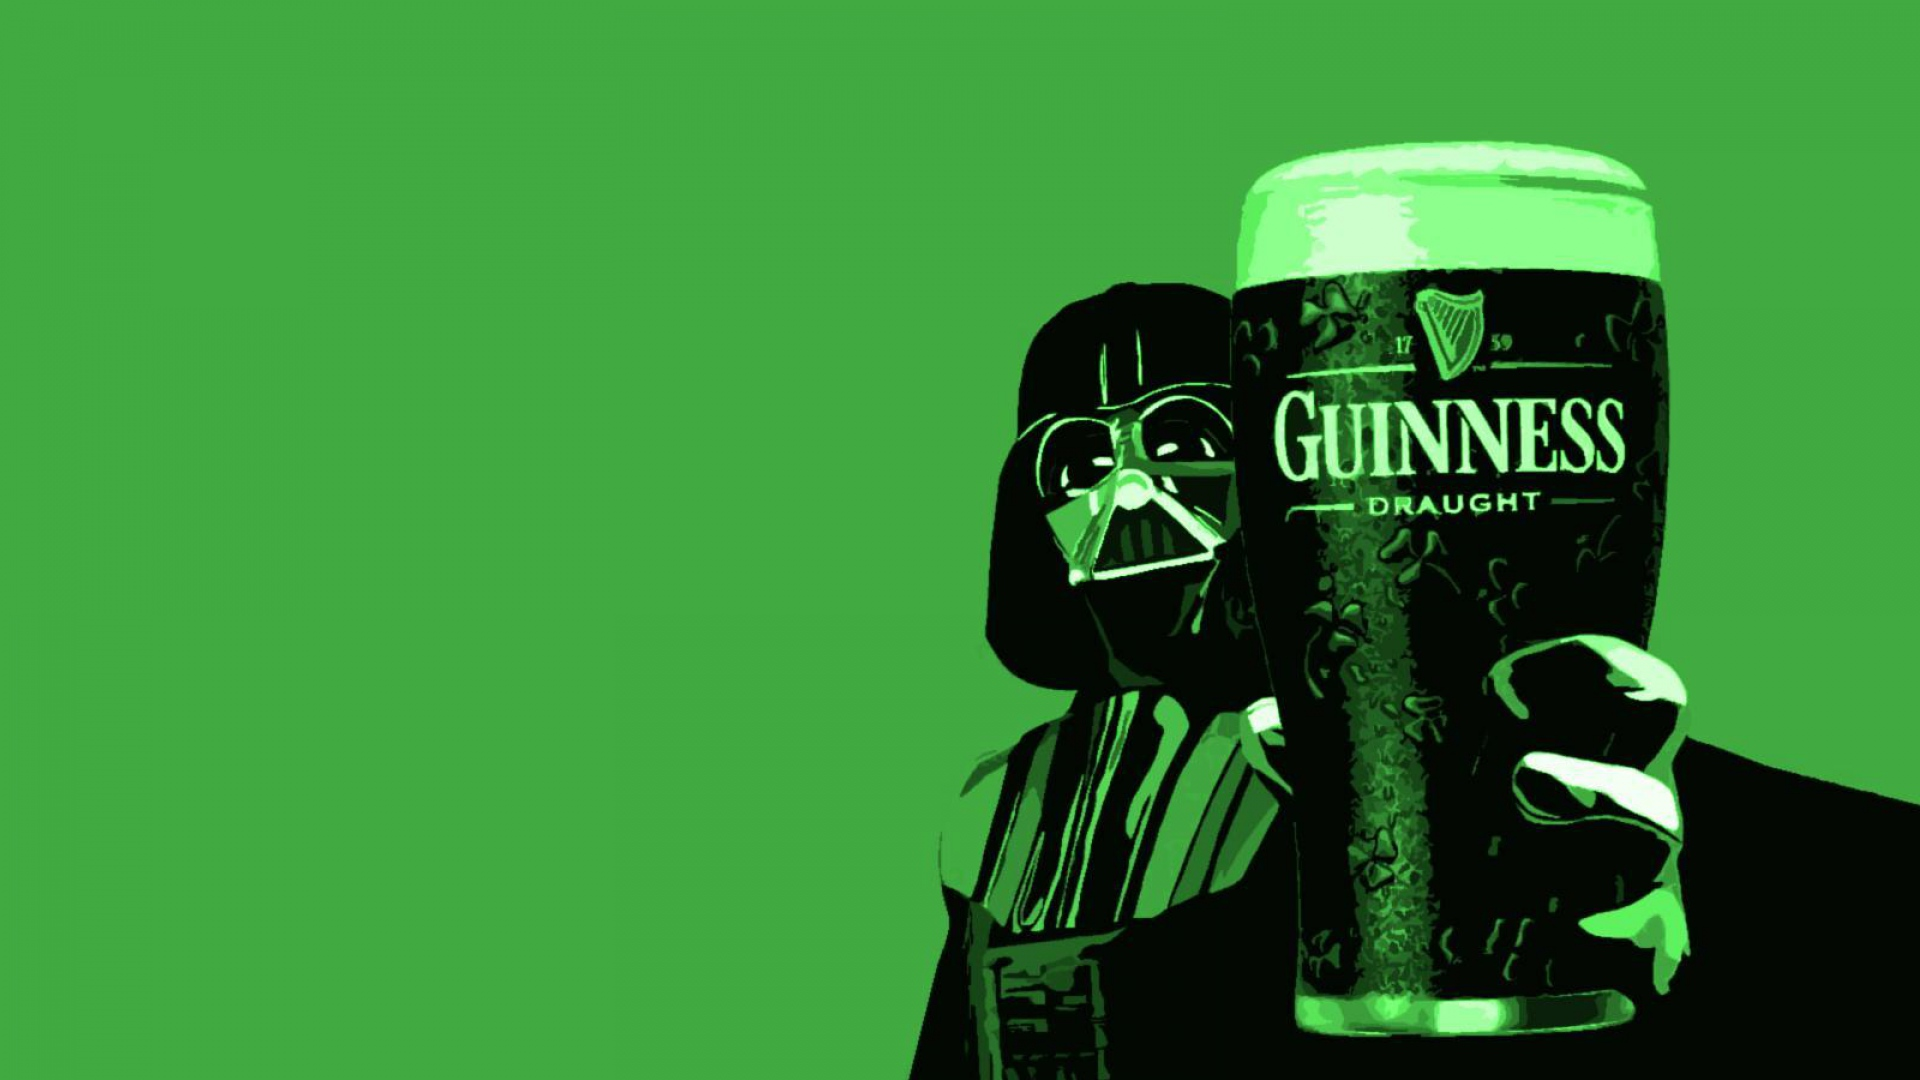 saint_patricks_day_darth_vader_guinnes- wallpaper